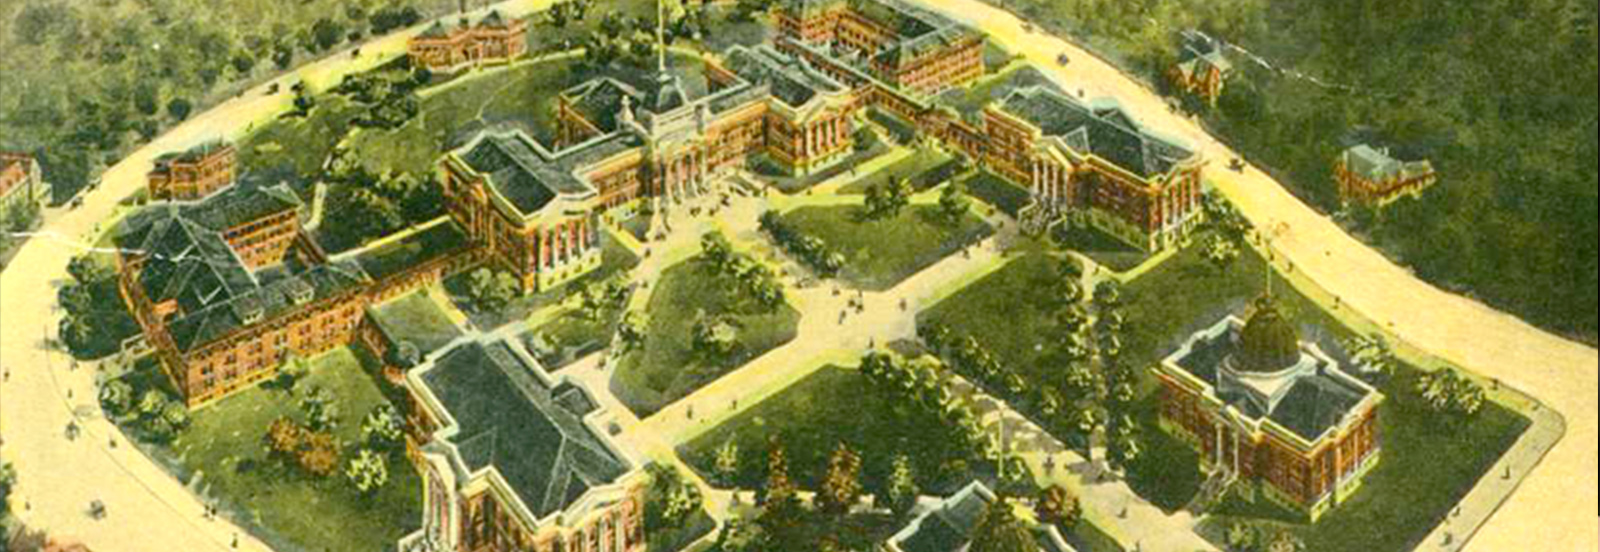 First Campus Master Plan aerial view